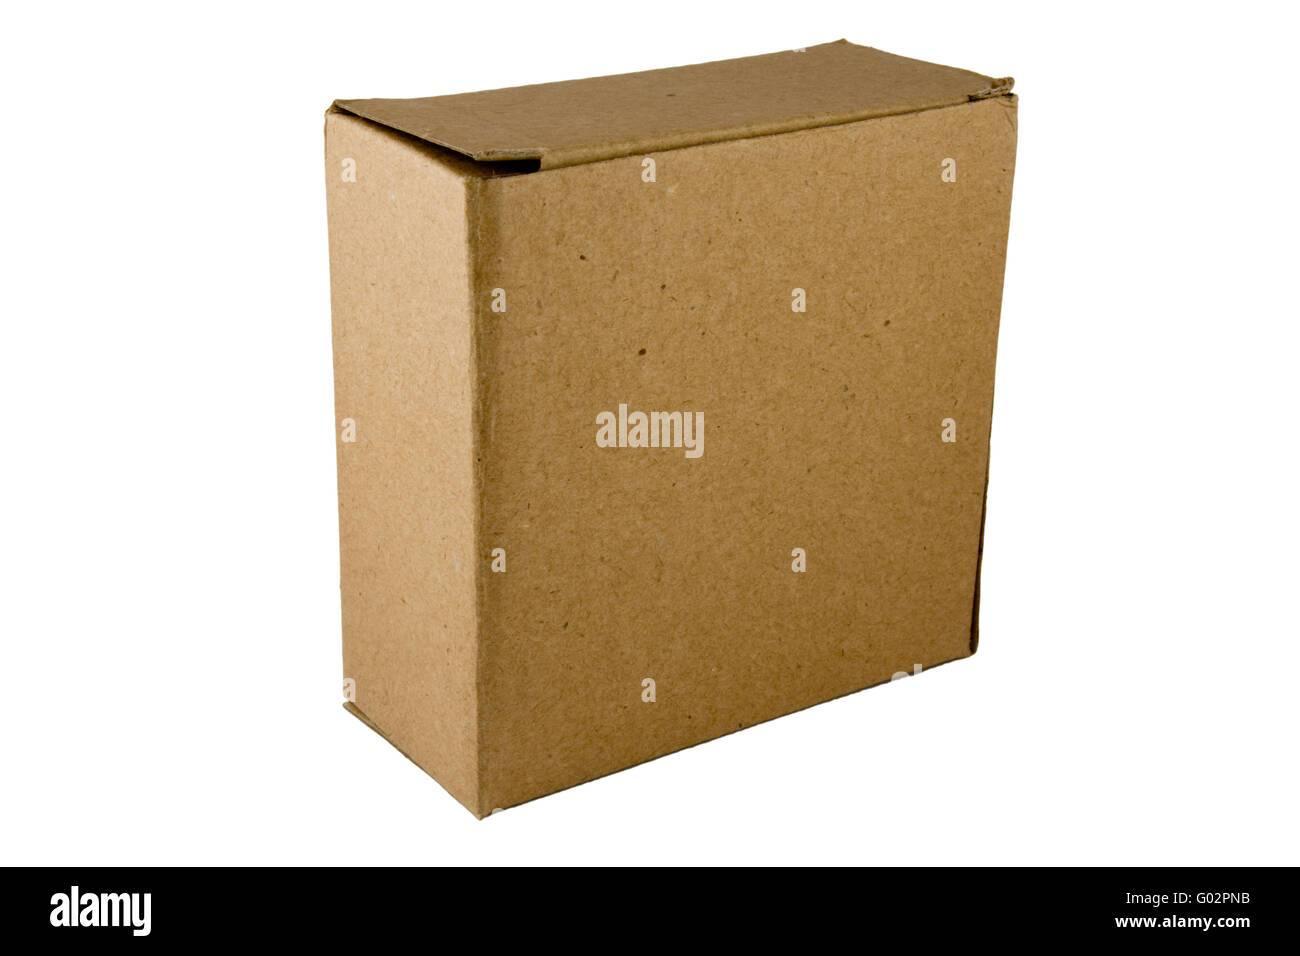 Ups Shipping Cut Out Stock Images & Pictures - Alamy